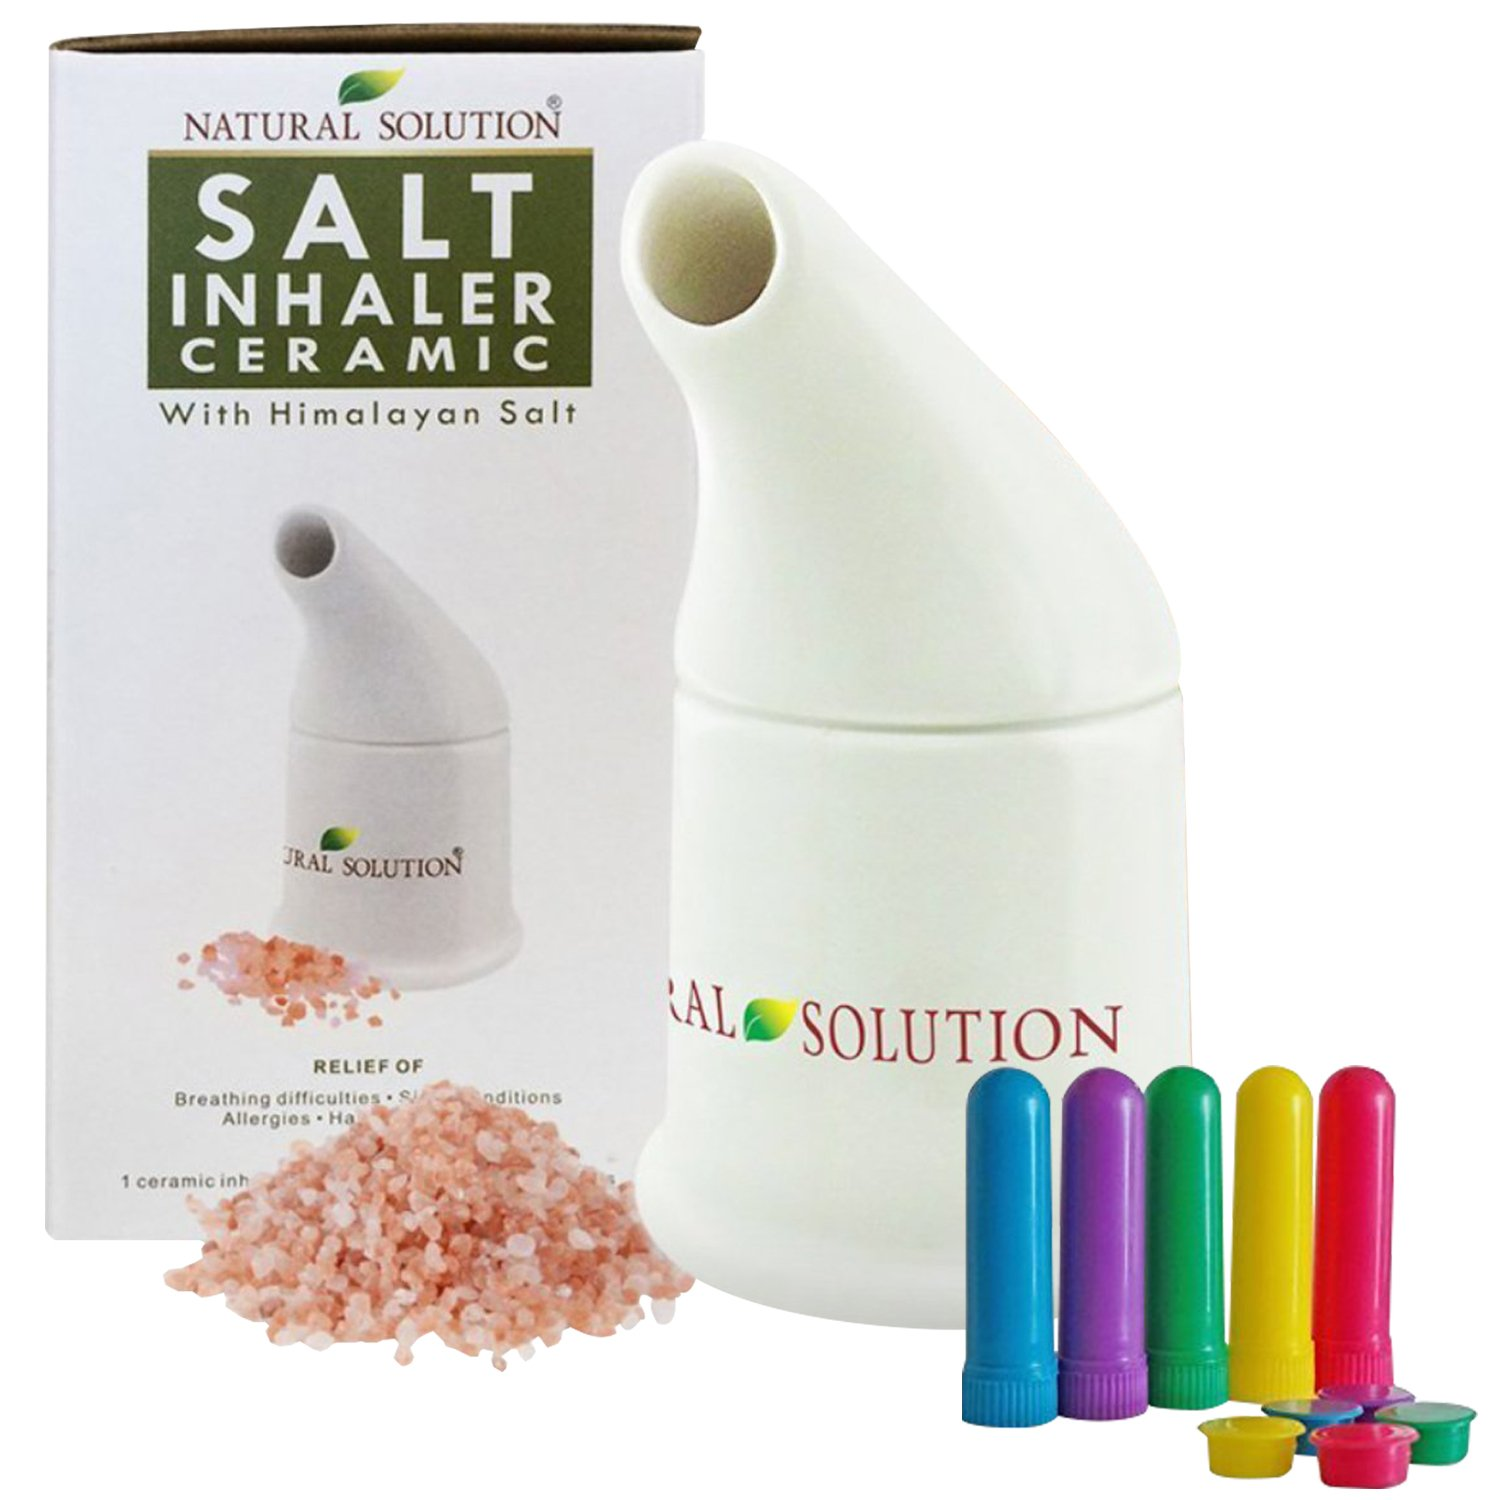 Natural Solution Himalayan Pink Salt Inhaler with 5 Travel Inhalers and 4 oz of Extra Salt, Therapy Inhaler for Asthma and Allergies